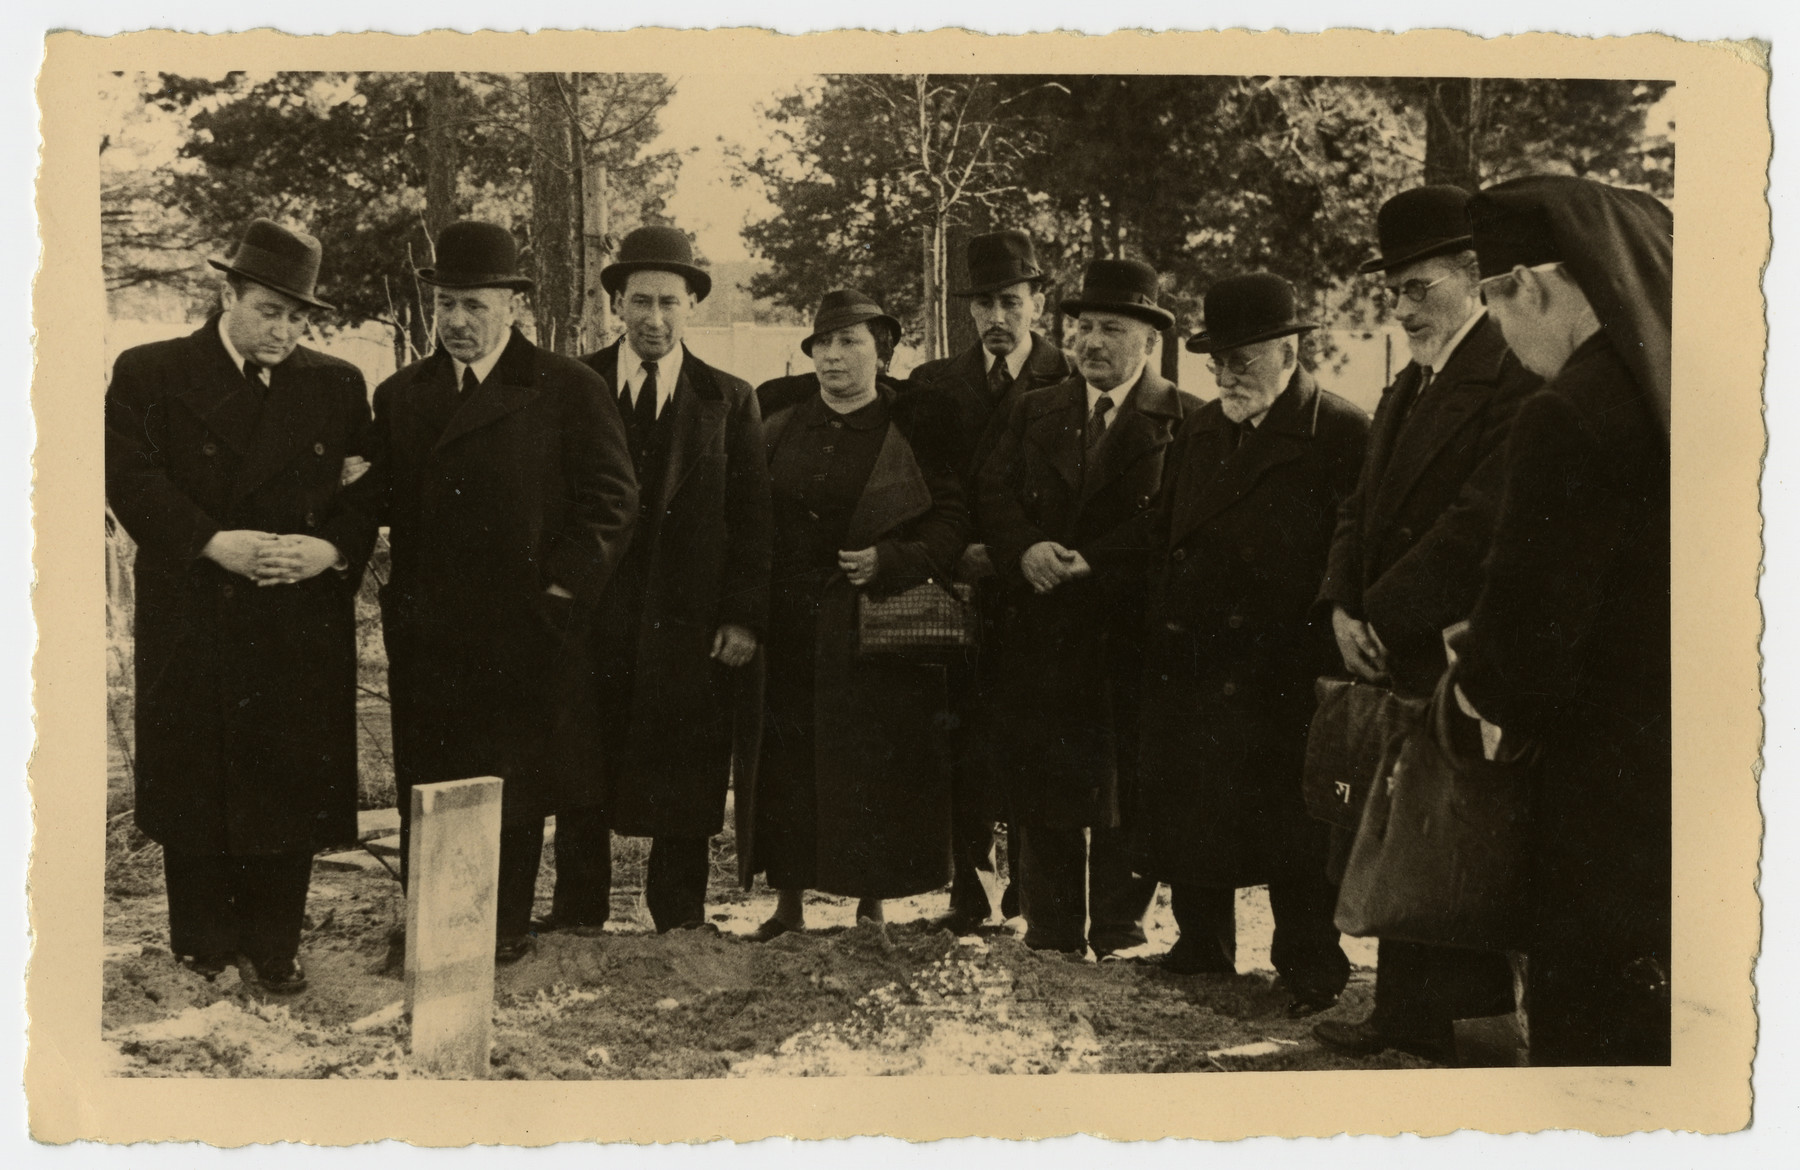 Mourners stand by the grave of Freida Albin.  Pictured are Papa, Aron, Zilla, Harri, Abraham, Opapa, an aquaintance, and a nurse.